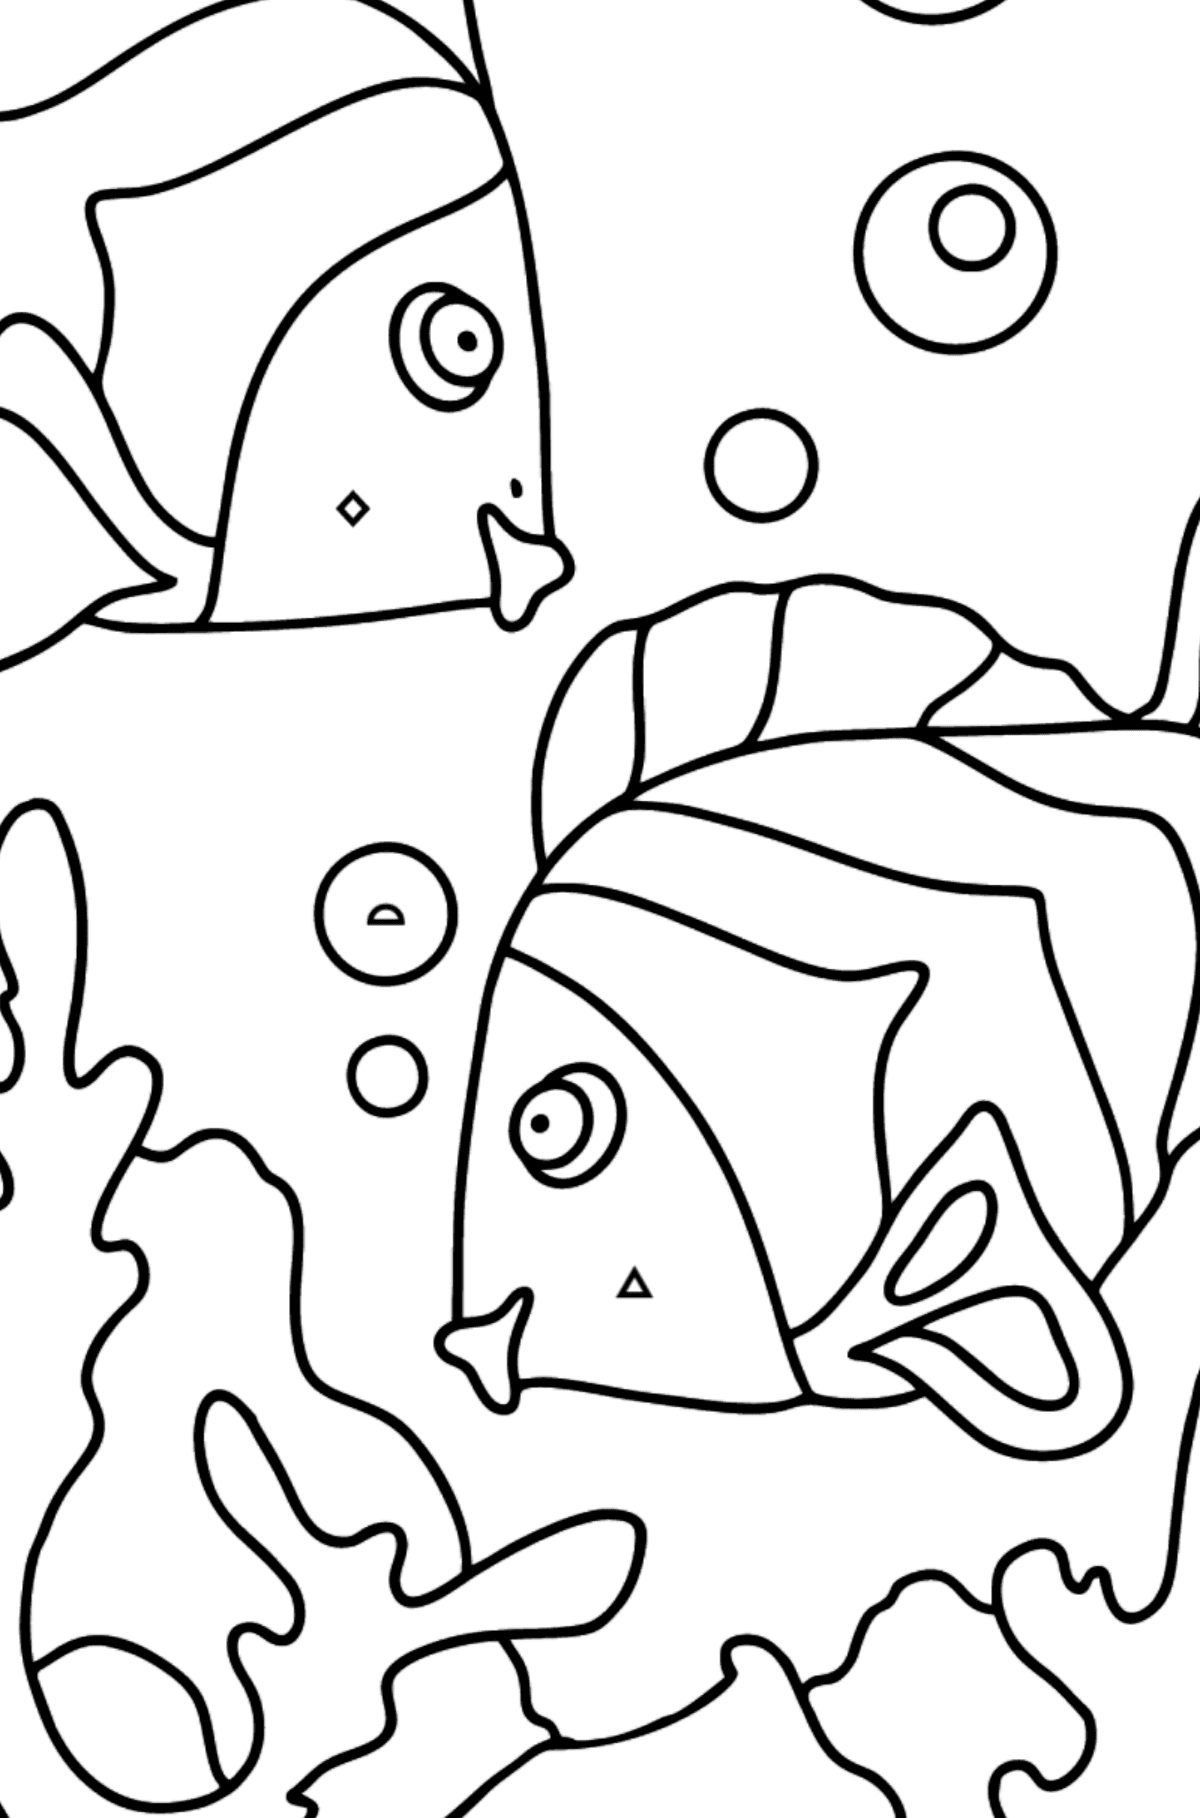 Coloring Page - Fish are Playing Happily - Coloring by Geometric Shapes for Kids